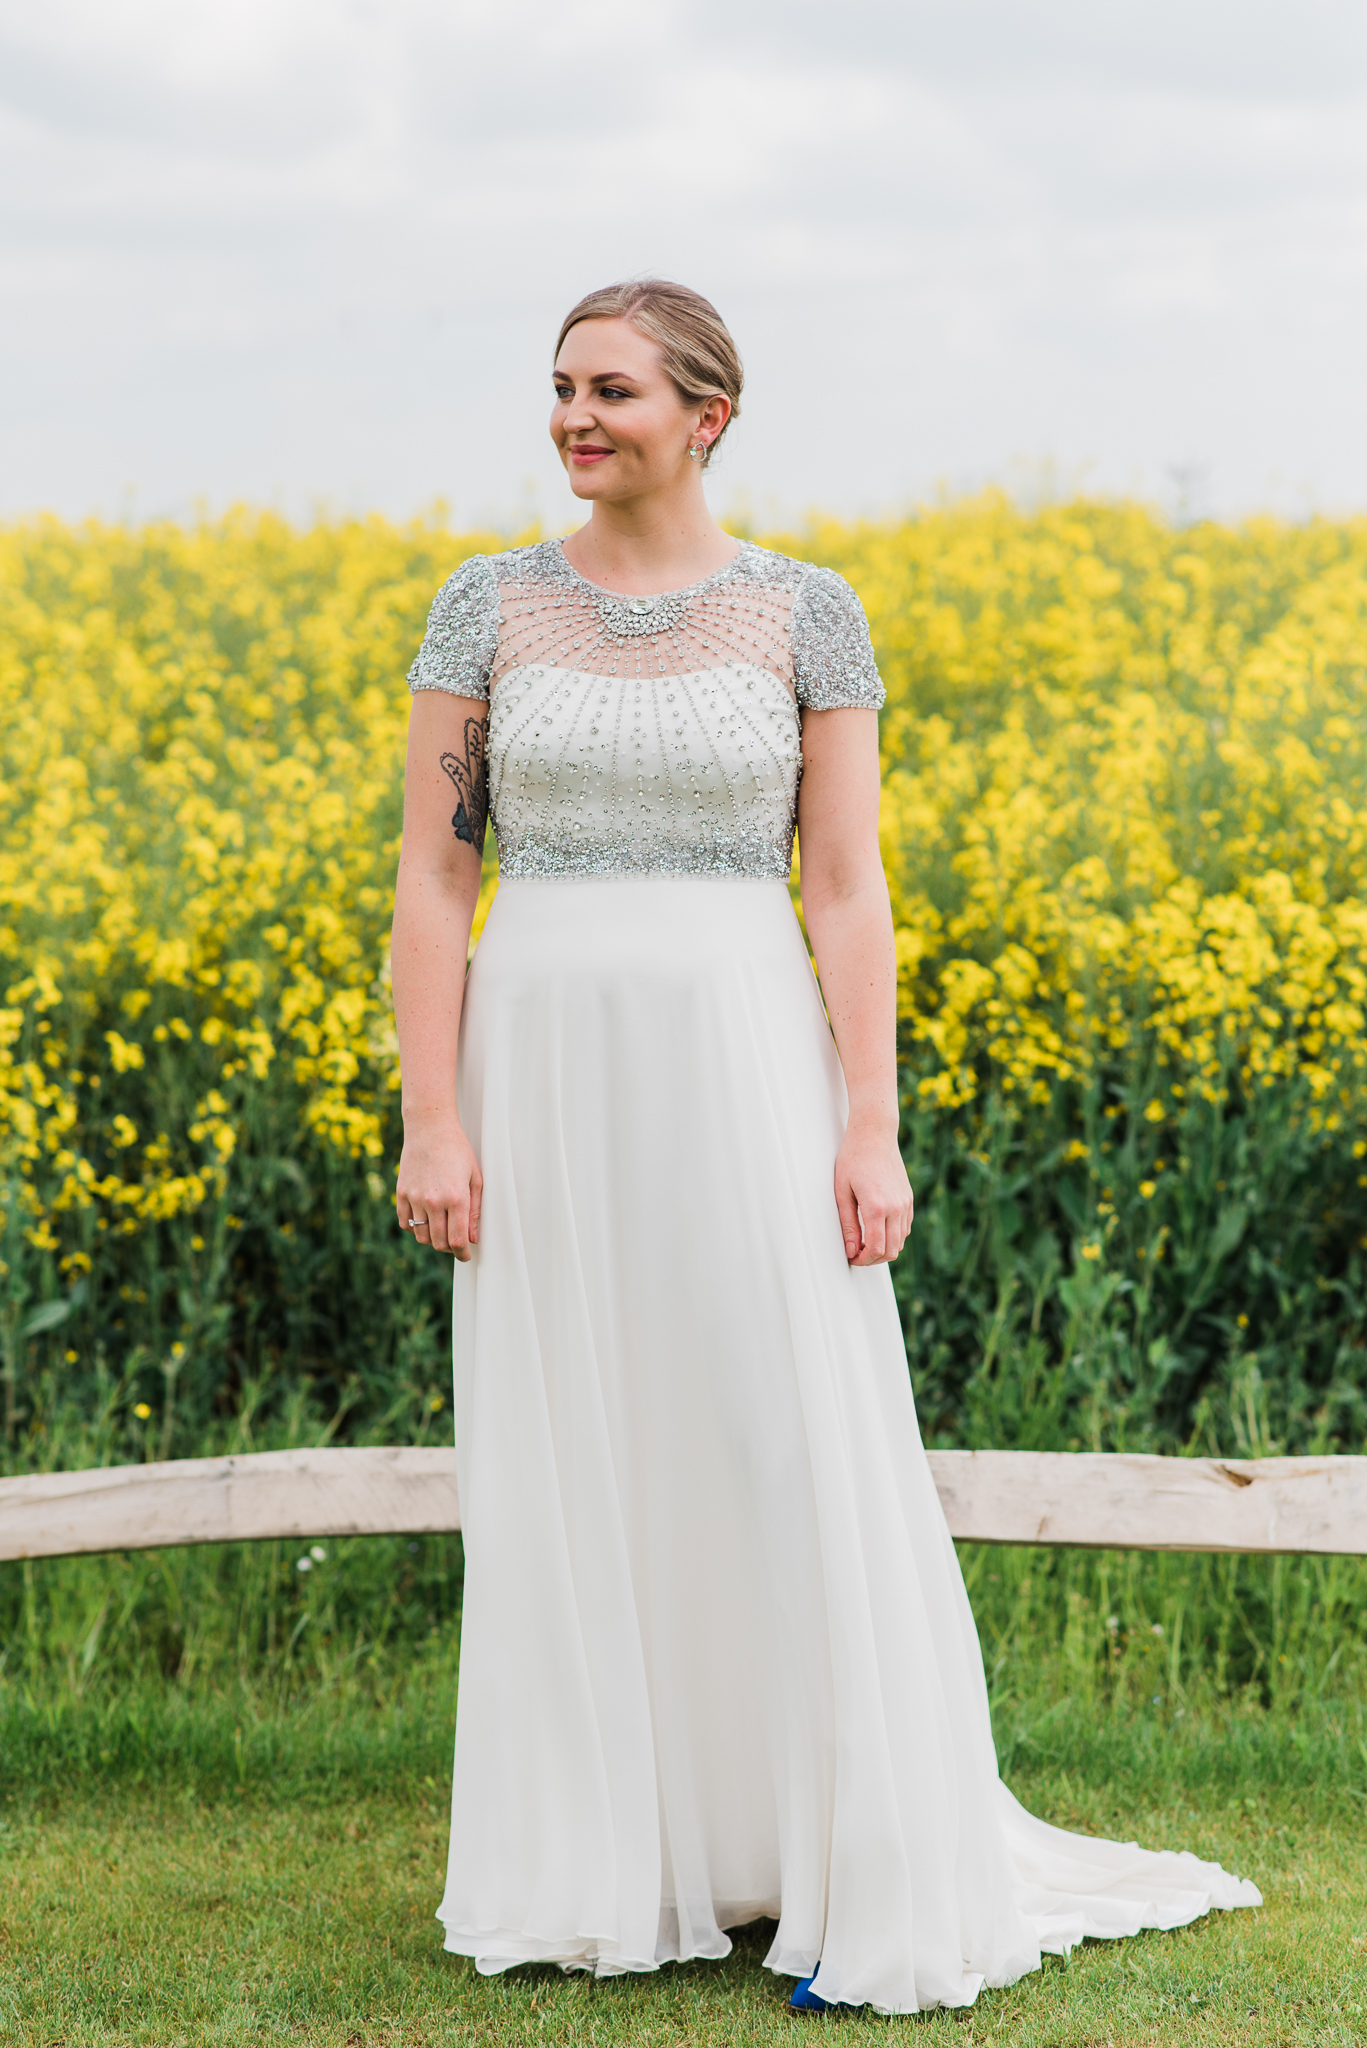 Bride standing beside rapeseed field in Jenny Packham dress